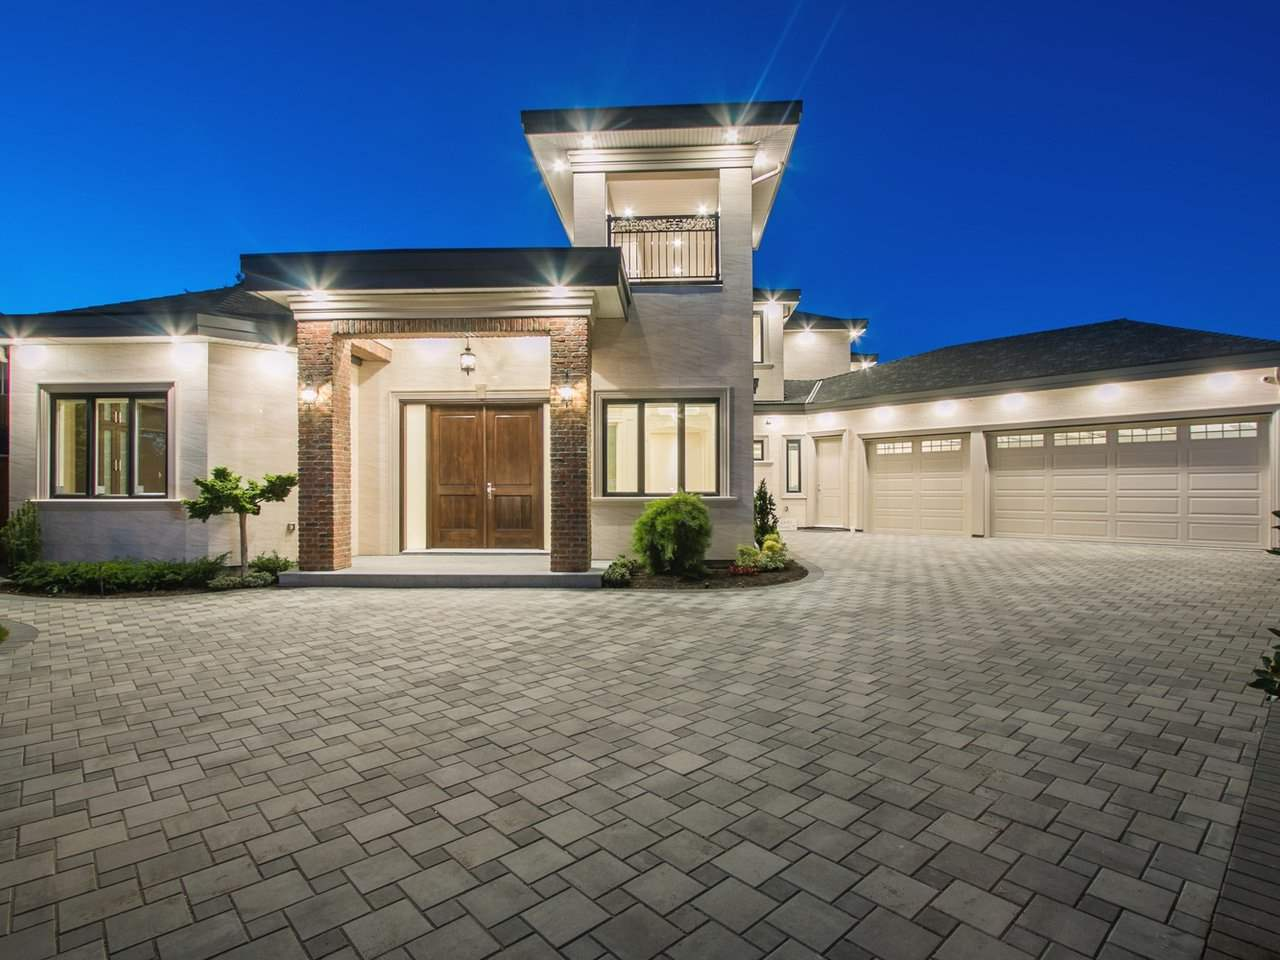 Truely an impressive architecture zen design house sitting on over 12,000 sqft lot, surrounded by professionally landscaped yard and gated fence with triple 11' garages (luxury cars can park right at back yard). Exhibiting a park-like, the mansion comes with 5,072 sf of living spaces, with luxury touches throughout. Grand entrance & foyer upon entering the front door. 2978 sf main flr comes with spacious living, dining, family and theatre room; western and wok gourmet kitchen with Miele appliances & custom-built cabinetry. Master retreat is upstairs alongside double master bedrooms for King and Queen with other all ensuite bedrooms.  Nice and friendly neighbourhood.  A masterpiece built for tasteful buyer!